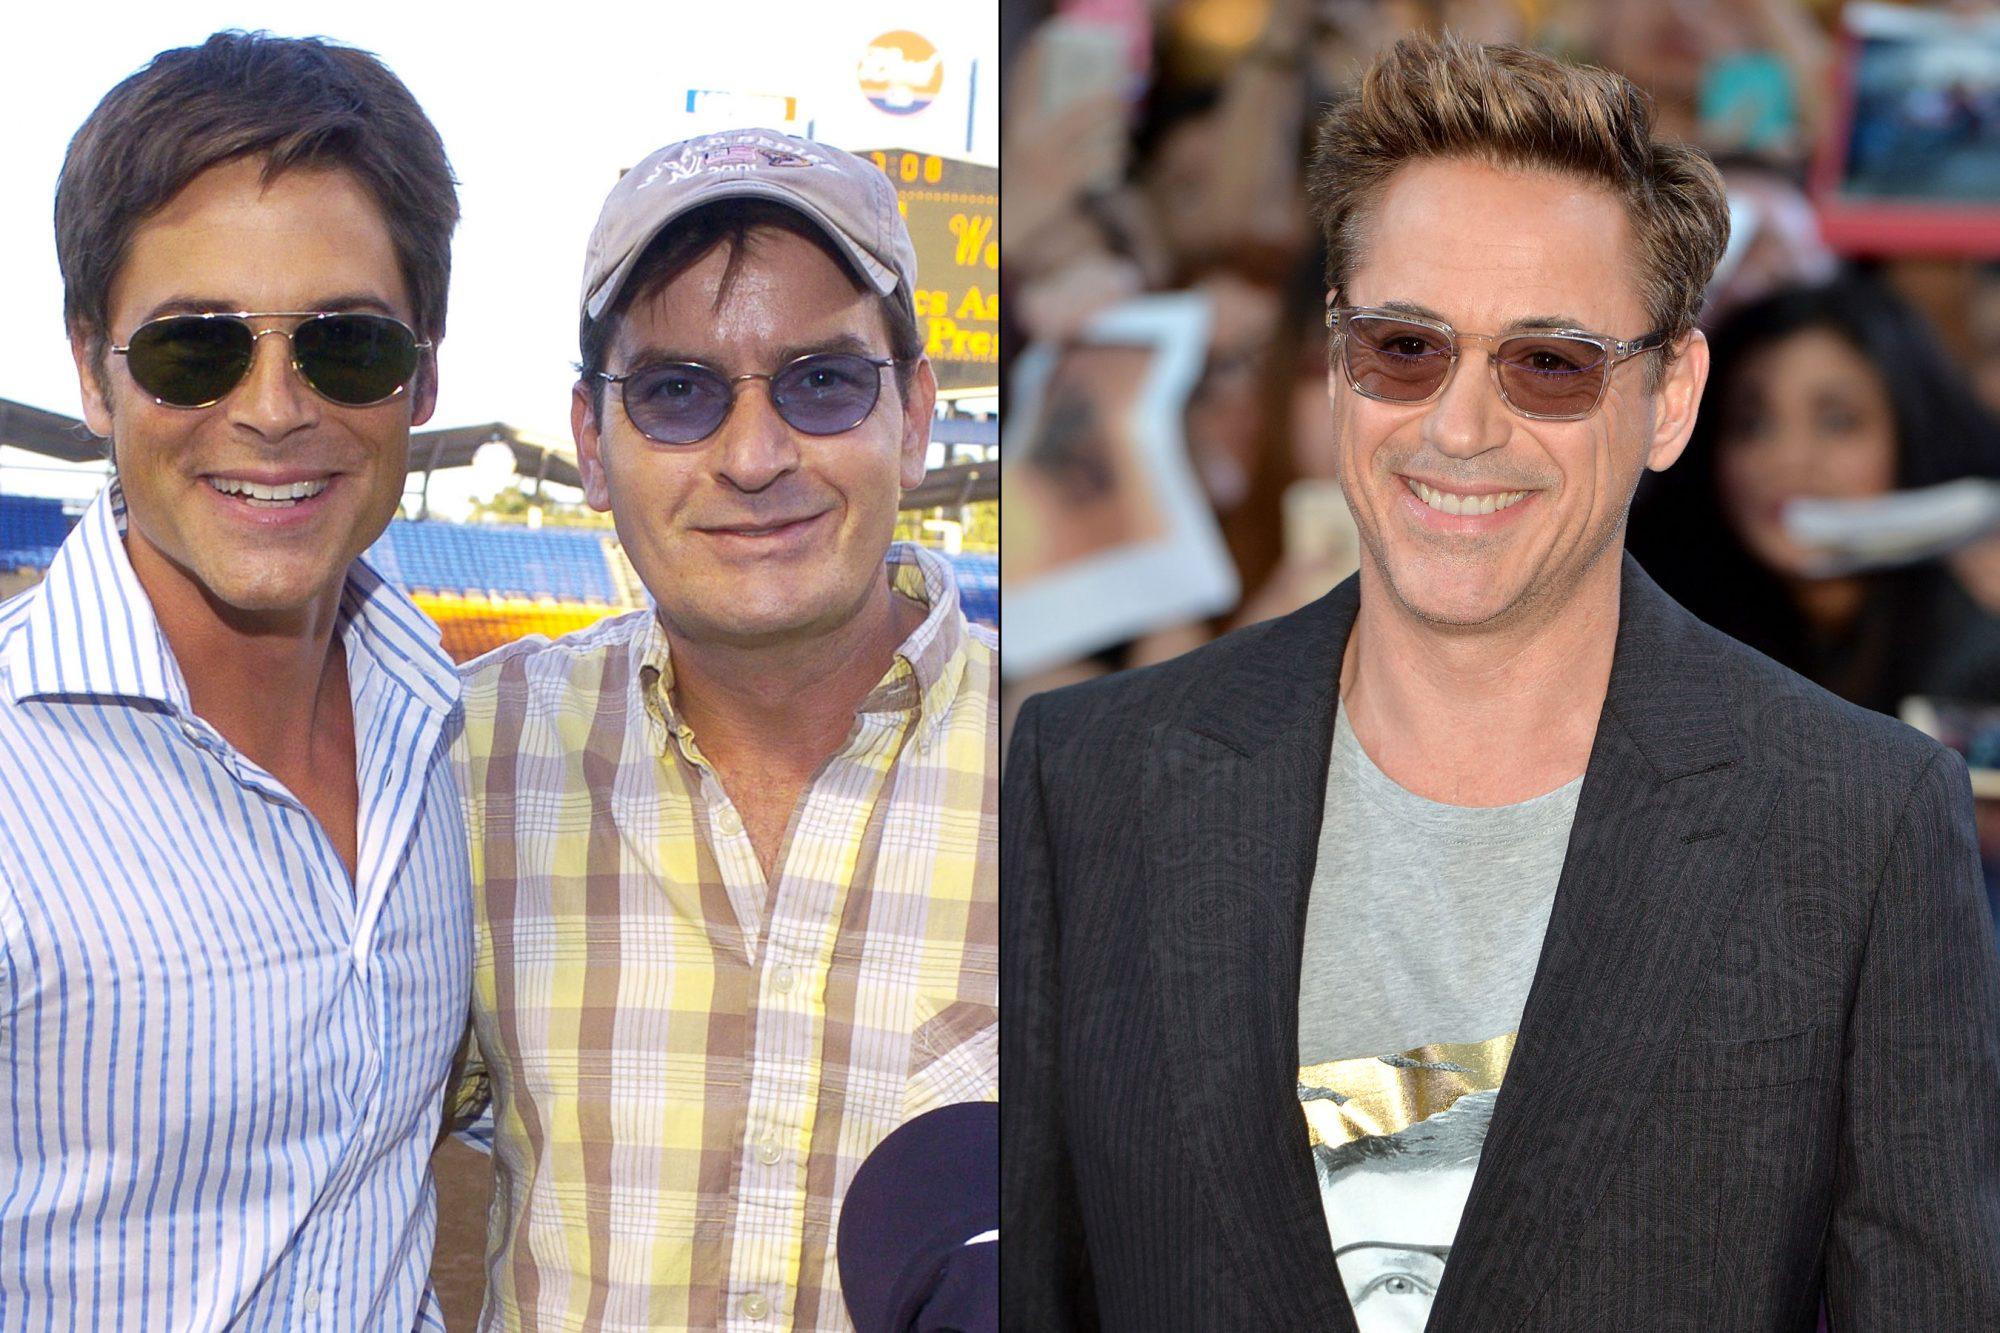 Rob Lowe, Charlie Sheen, and Robert Downey Jr.